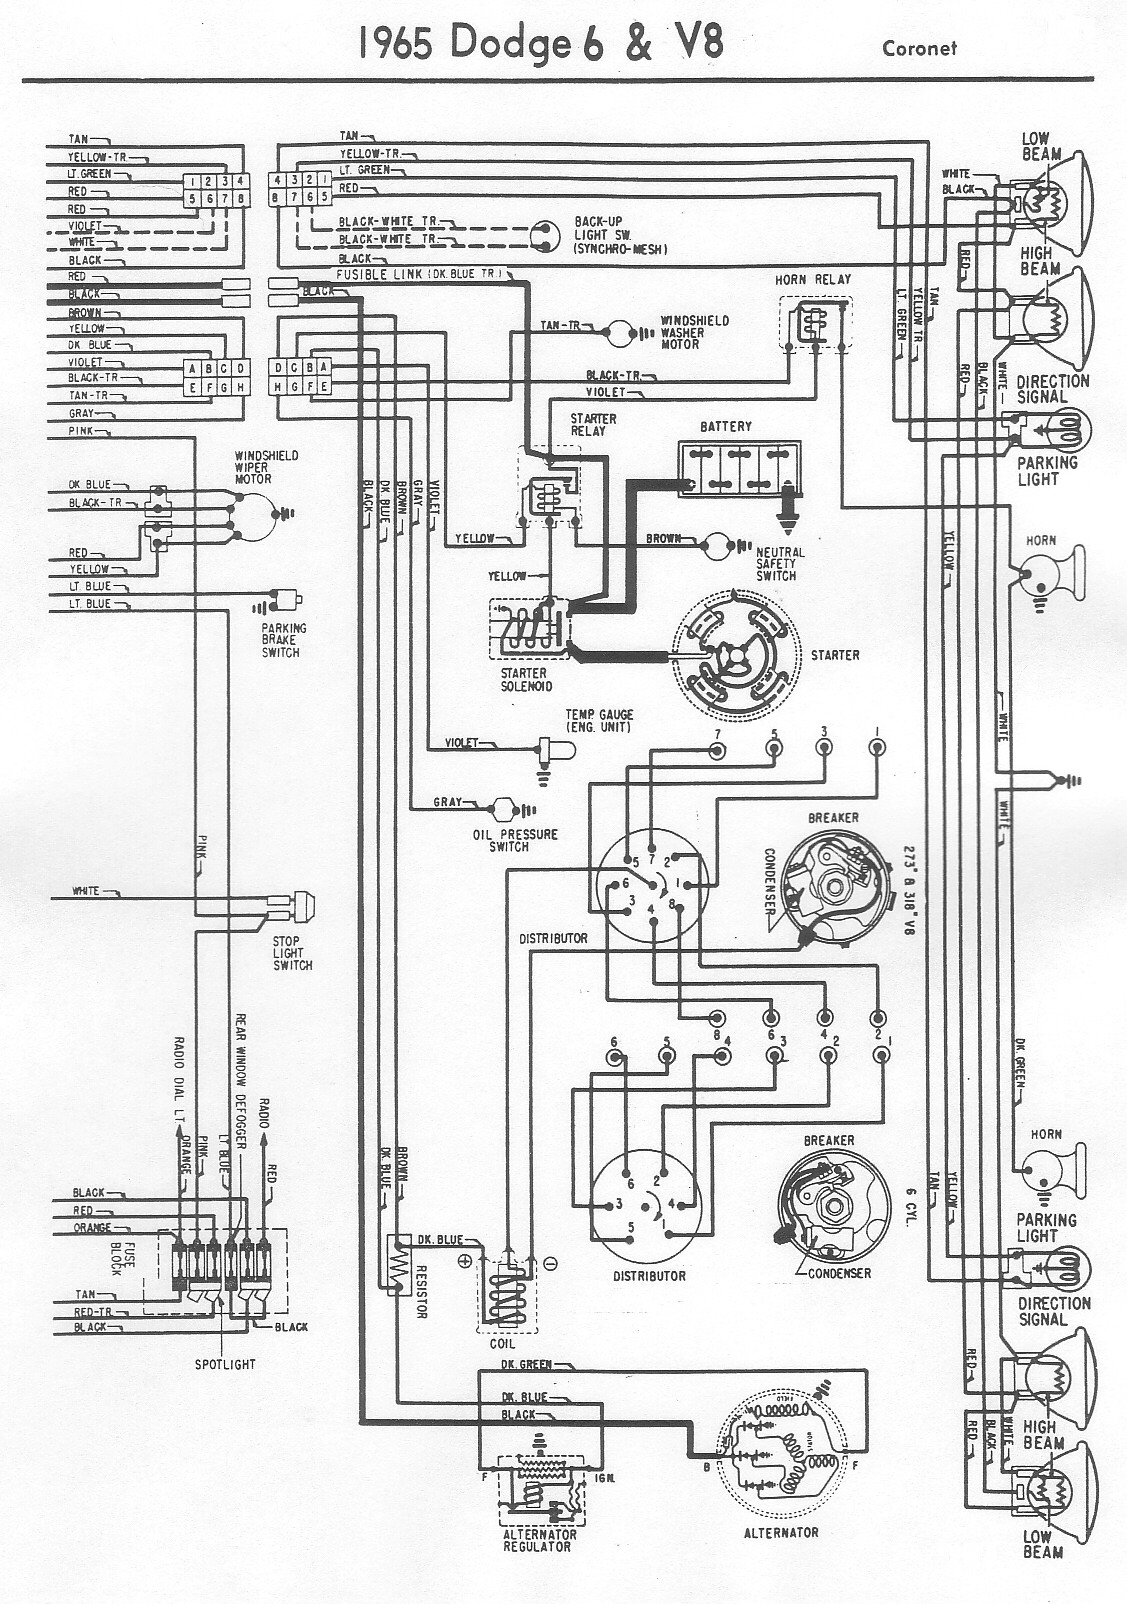 70 dart wiring diagram wiring diagram blogs dodge challenger wiring diagram 69 dart wiring diagram [ 1127 x 1604 Pixel ]